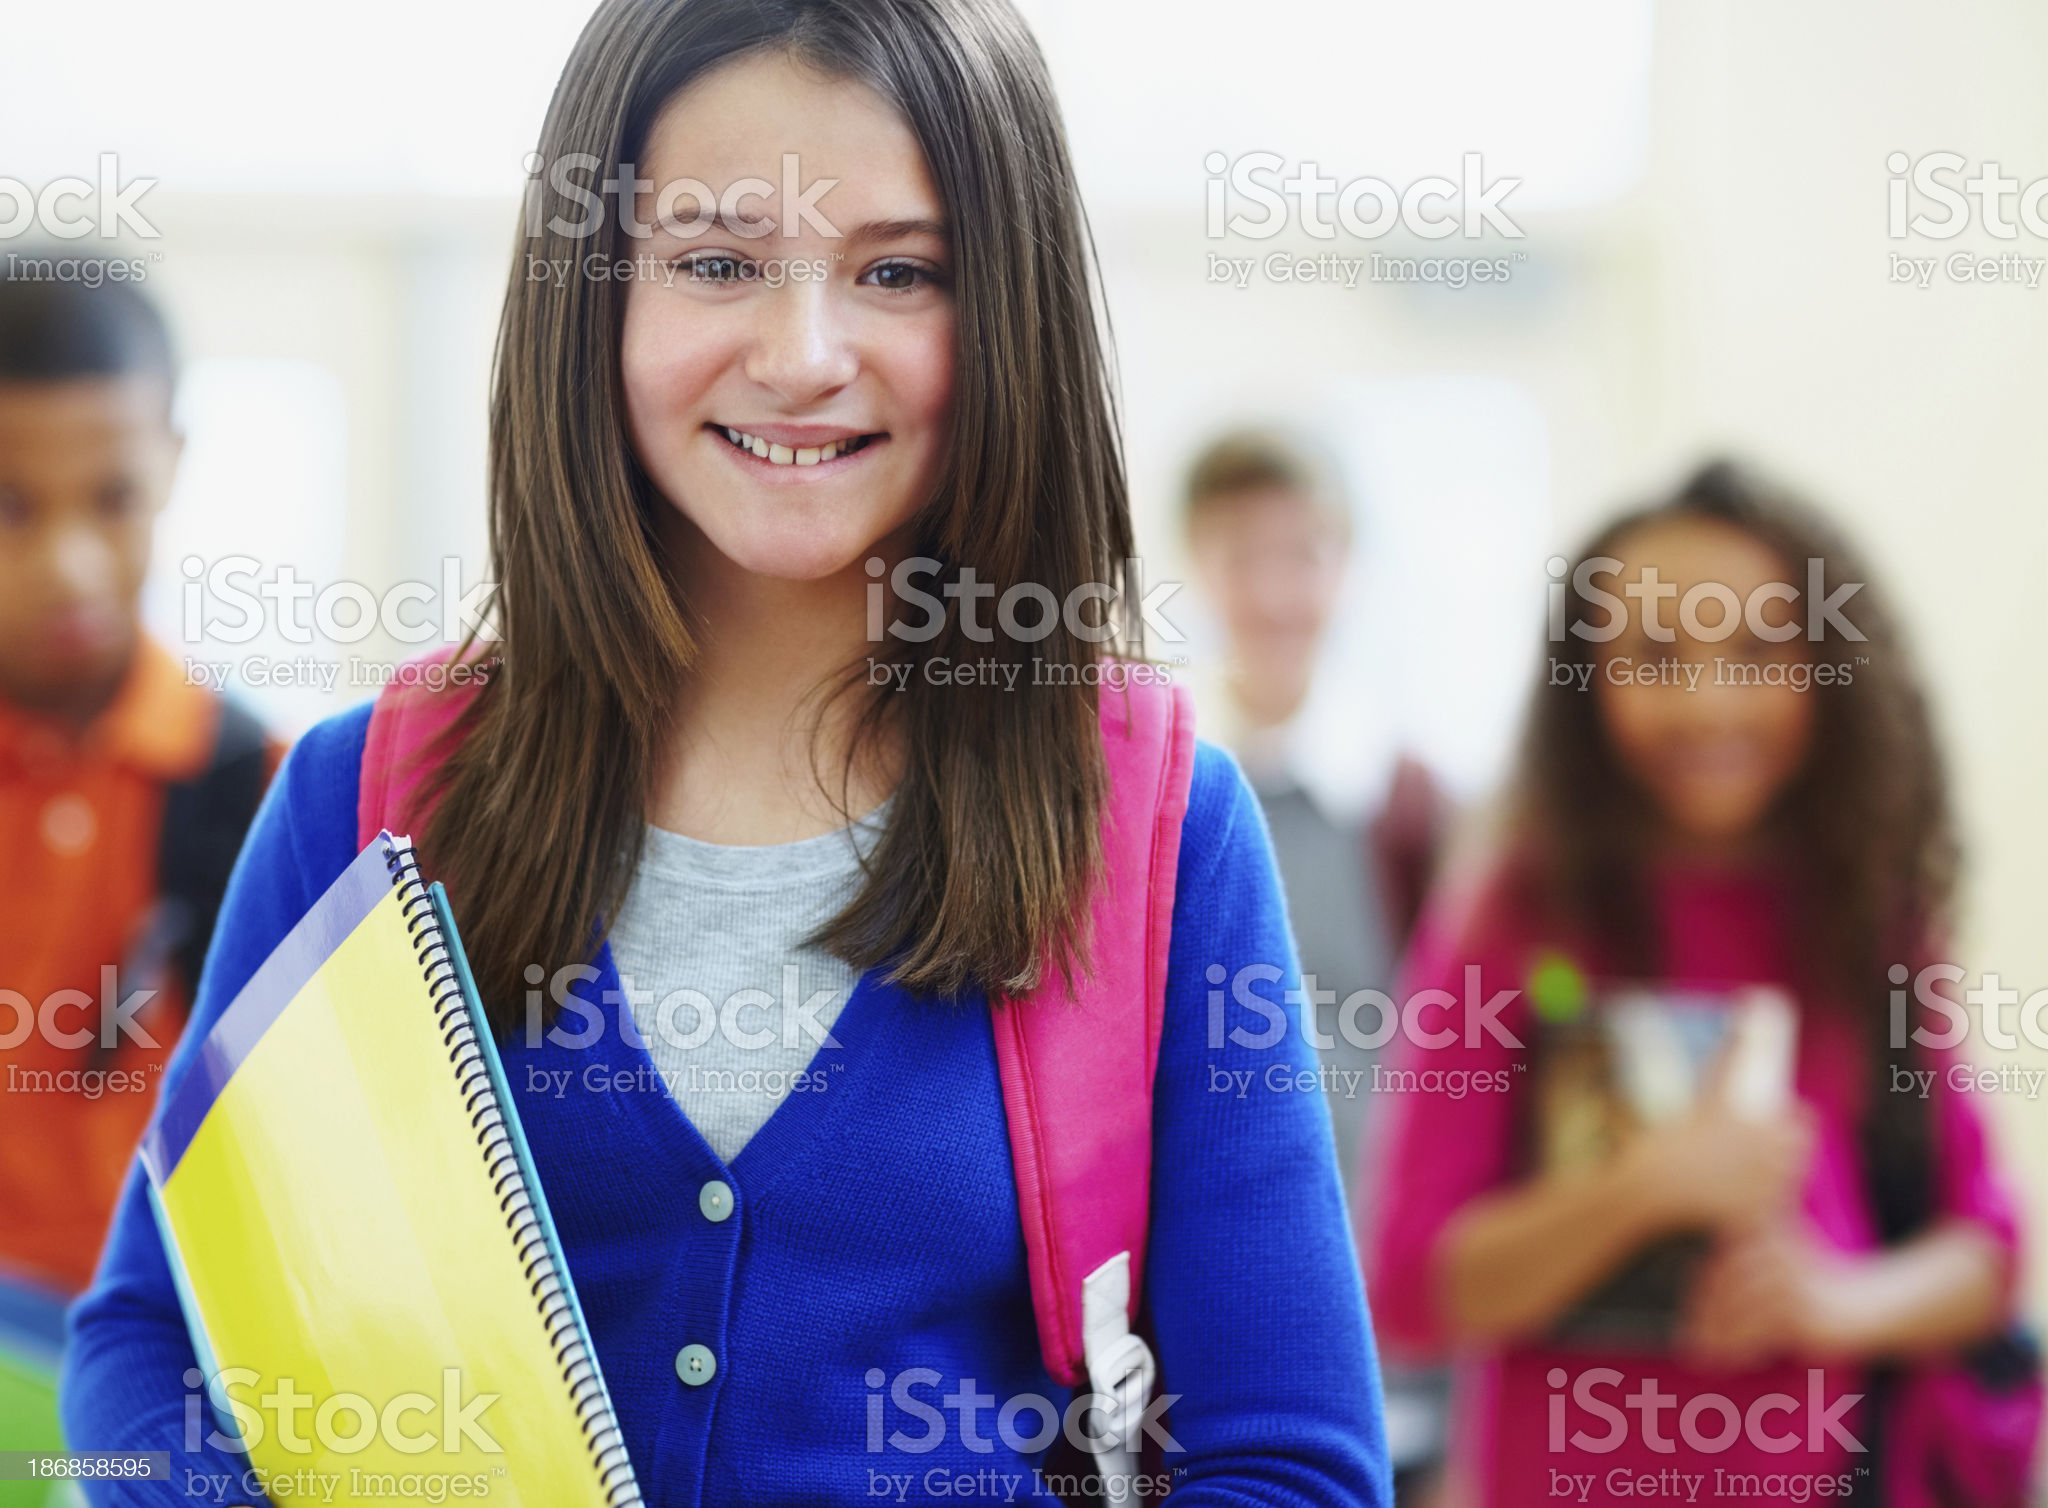 Cute young girl with friends in the background royalty-free stock photo